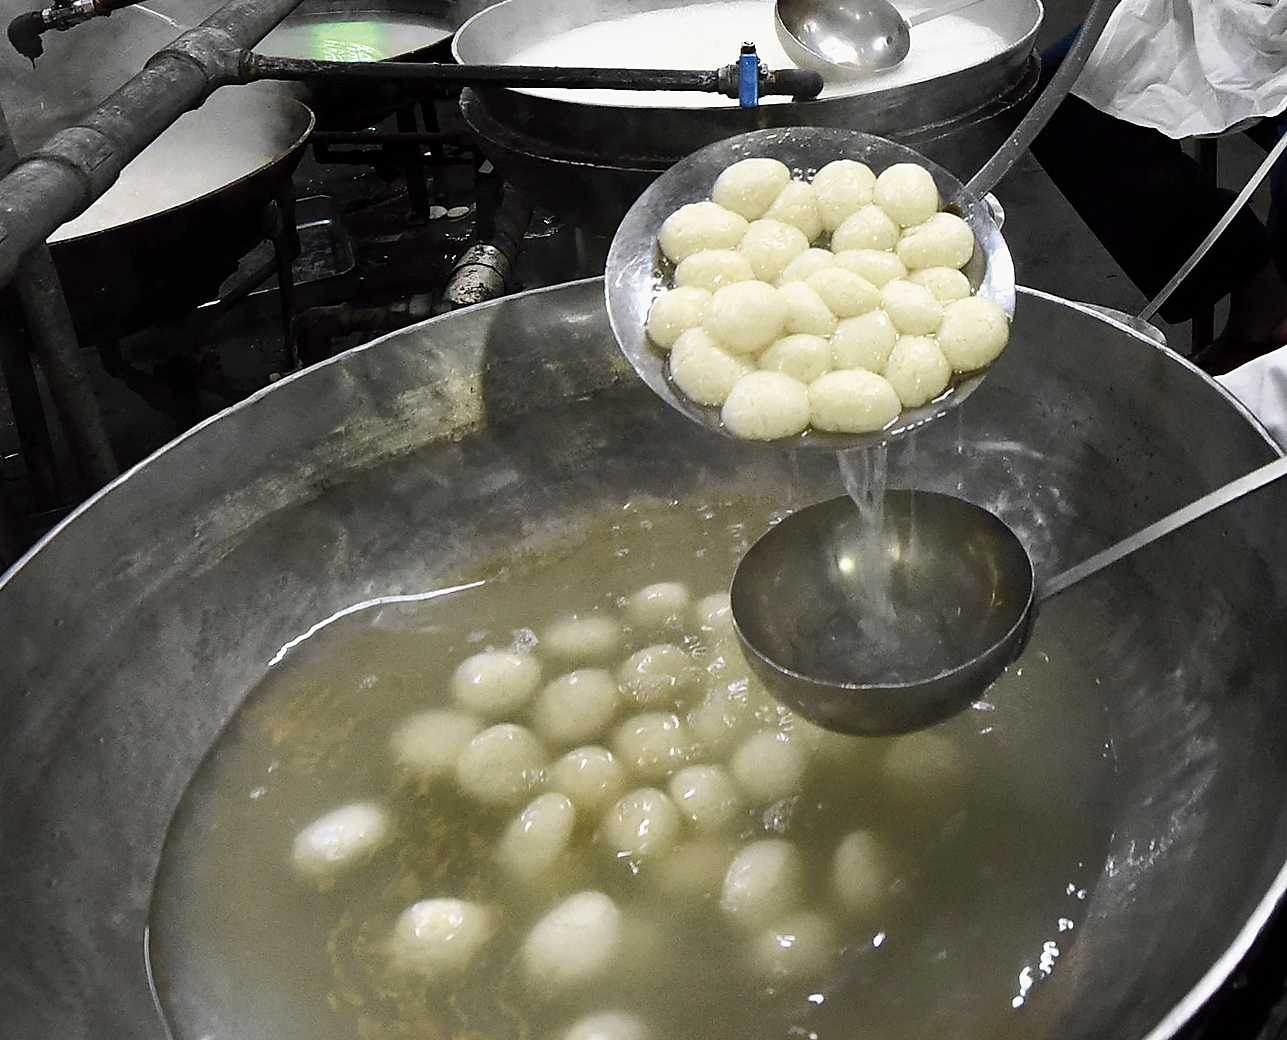 Rosogollas being soaked in sugar syrup at a shop in north Calcutta's Bagbazar